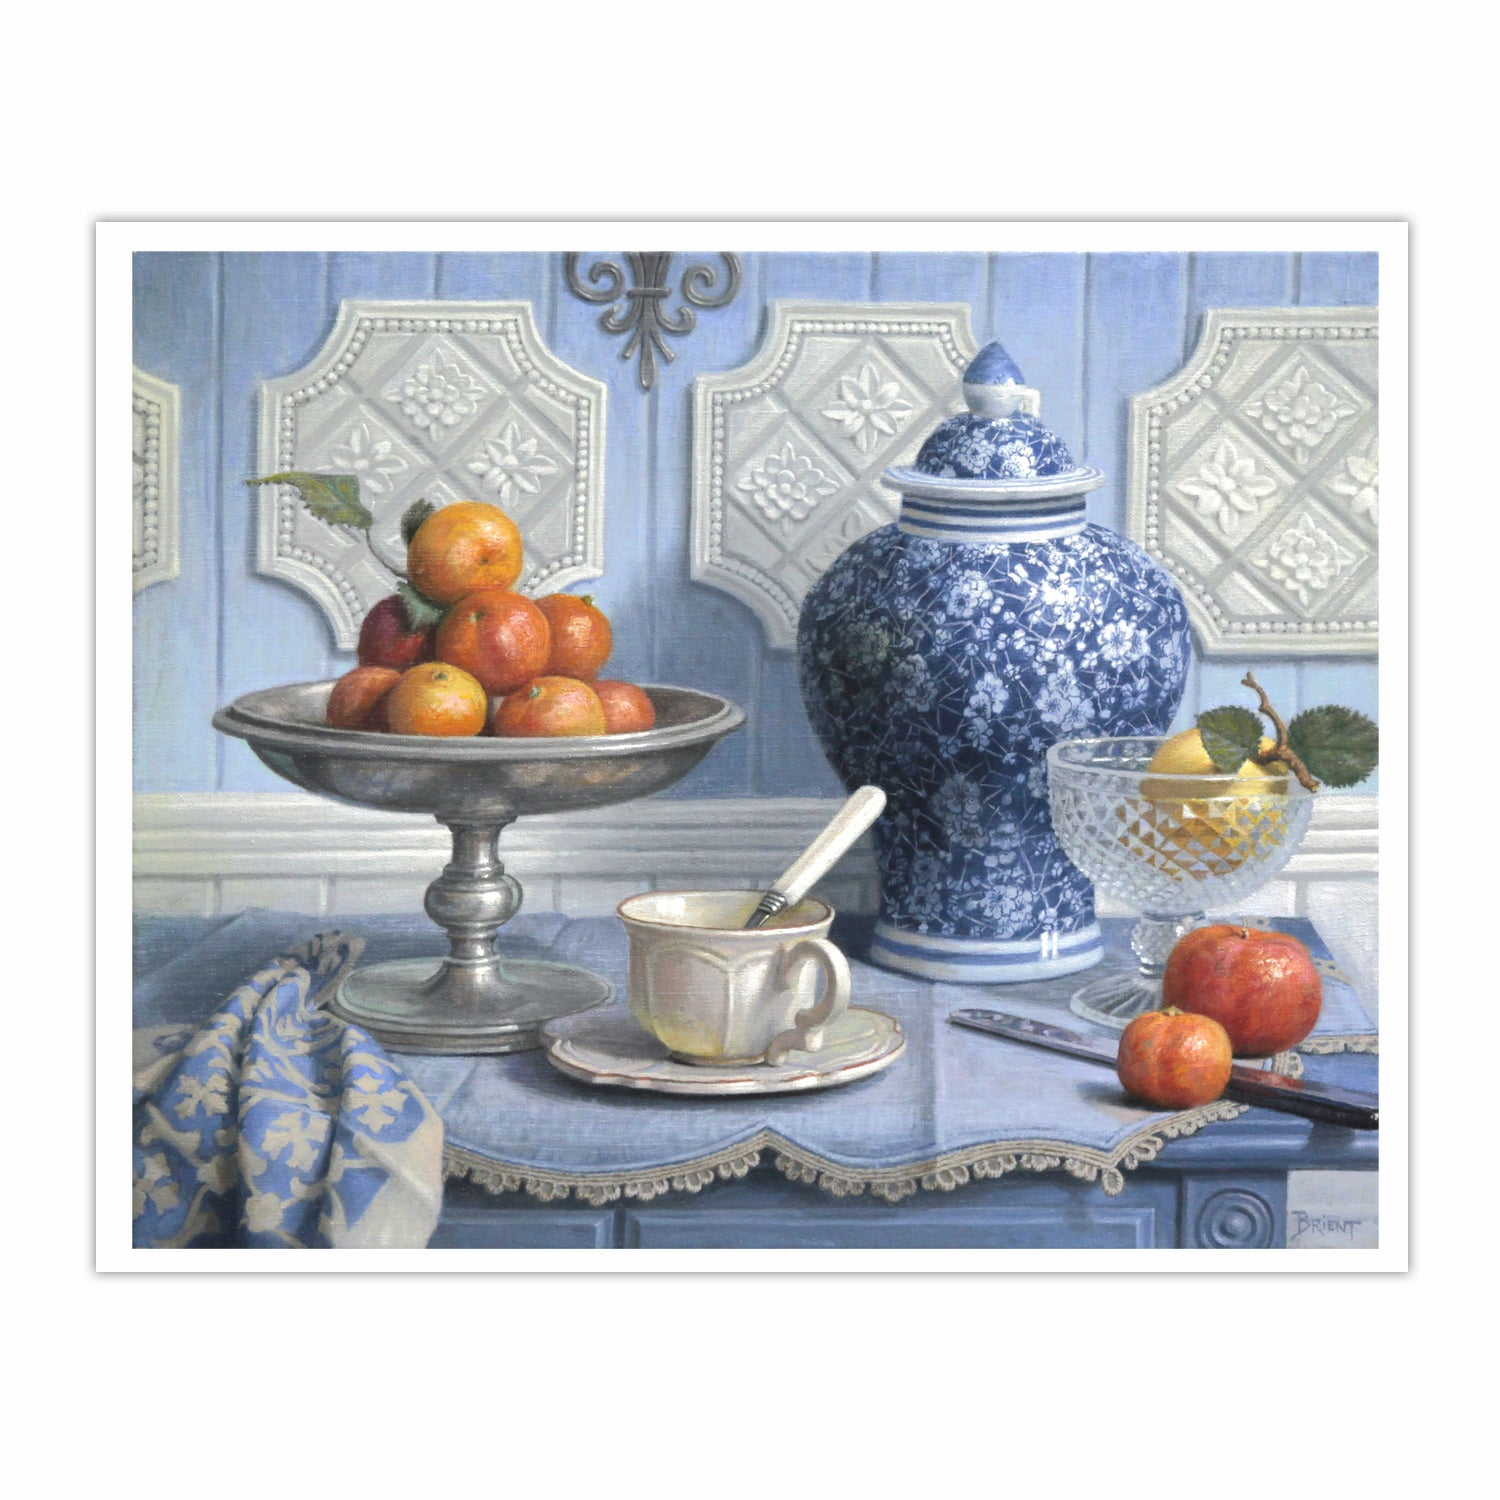 Still Life with a Chinese Vase and a Plate of Clementines